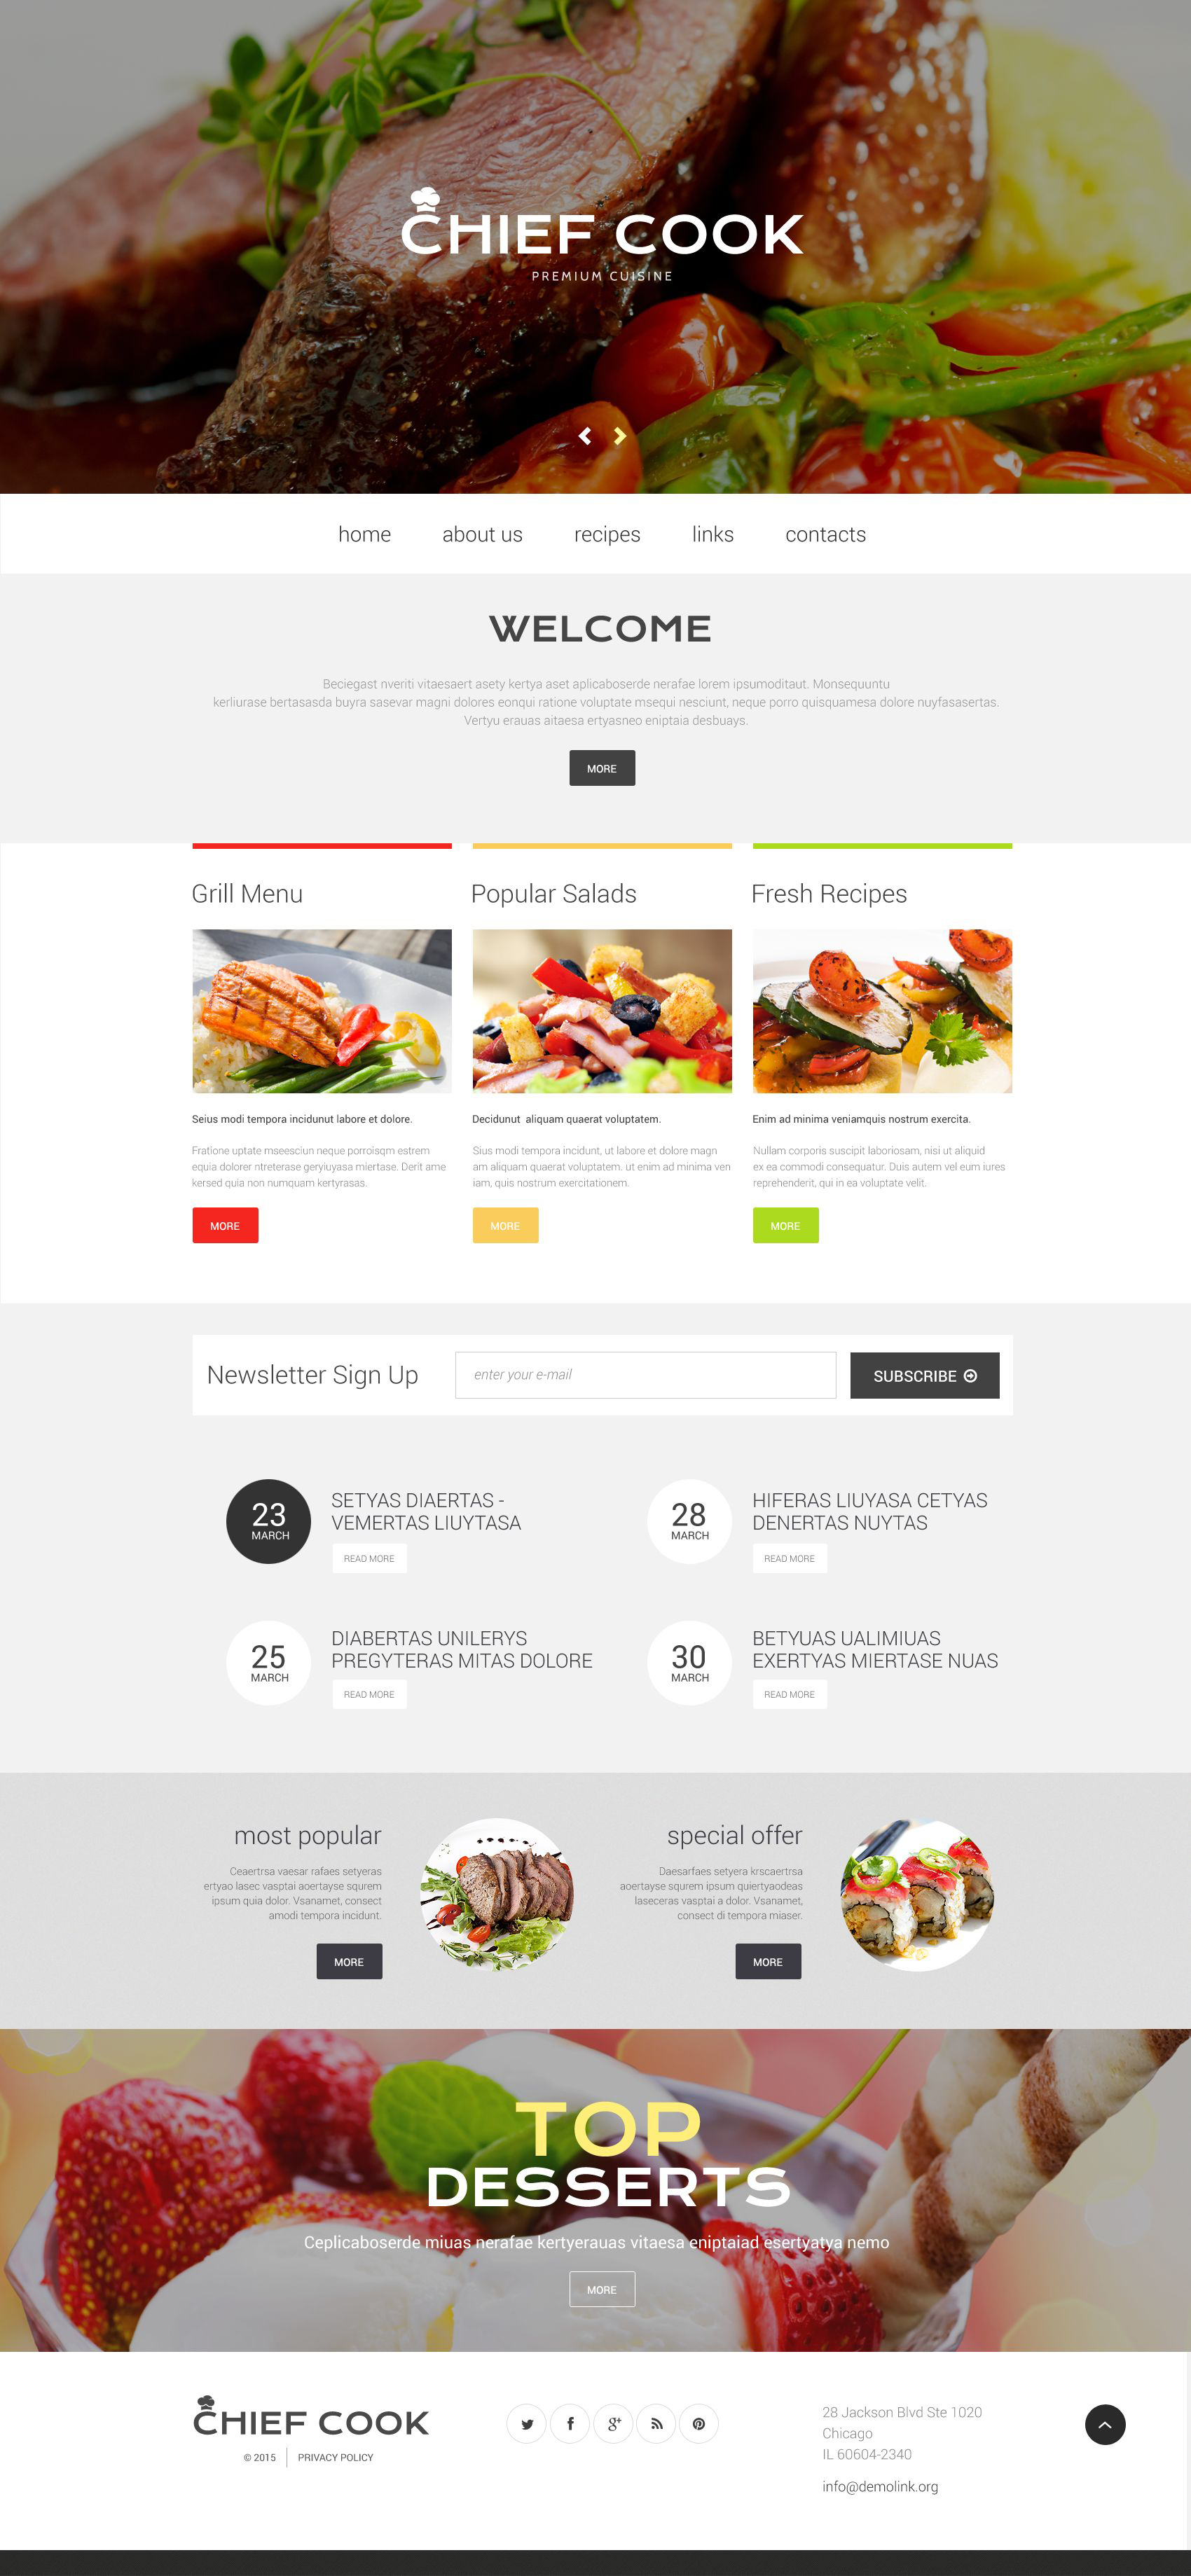 The Chef Cook Responsive Javascript Animated Design 53977, one of the best website templates of its kind (food & drink, most popular), also known as chef cook website template, cooking website template, menu website template, recipe website template, food website template, feast website template, tasty website template, delicious website template, gourmet and related with chef cook, cooking, menu, recipe, food, feast, tasty, delicious, gourmet, etc.